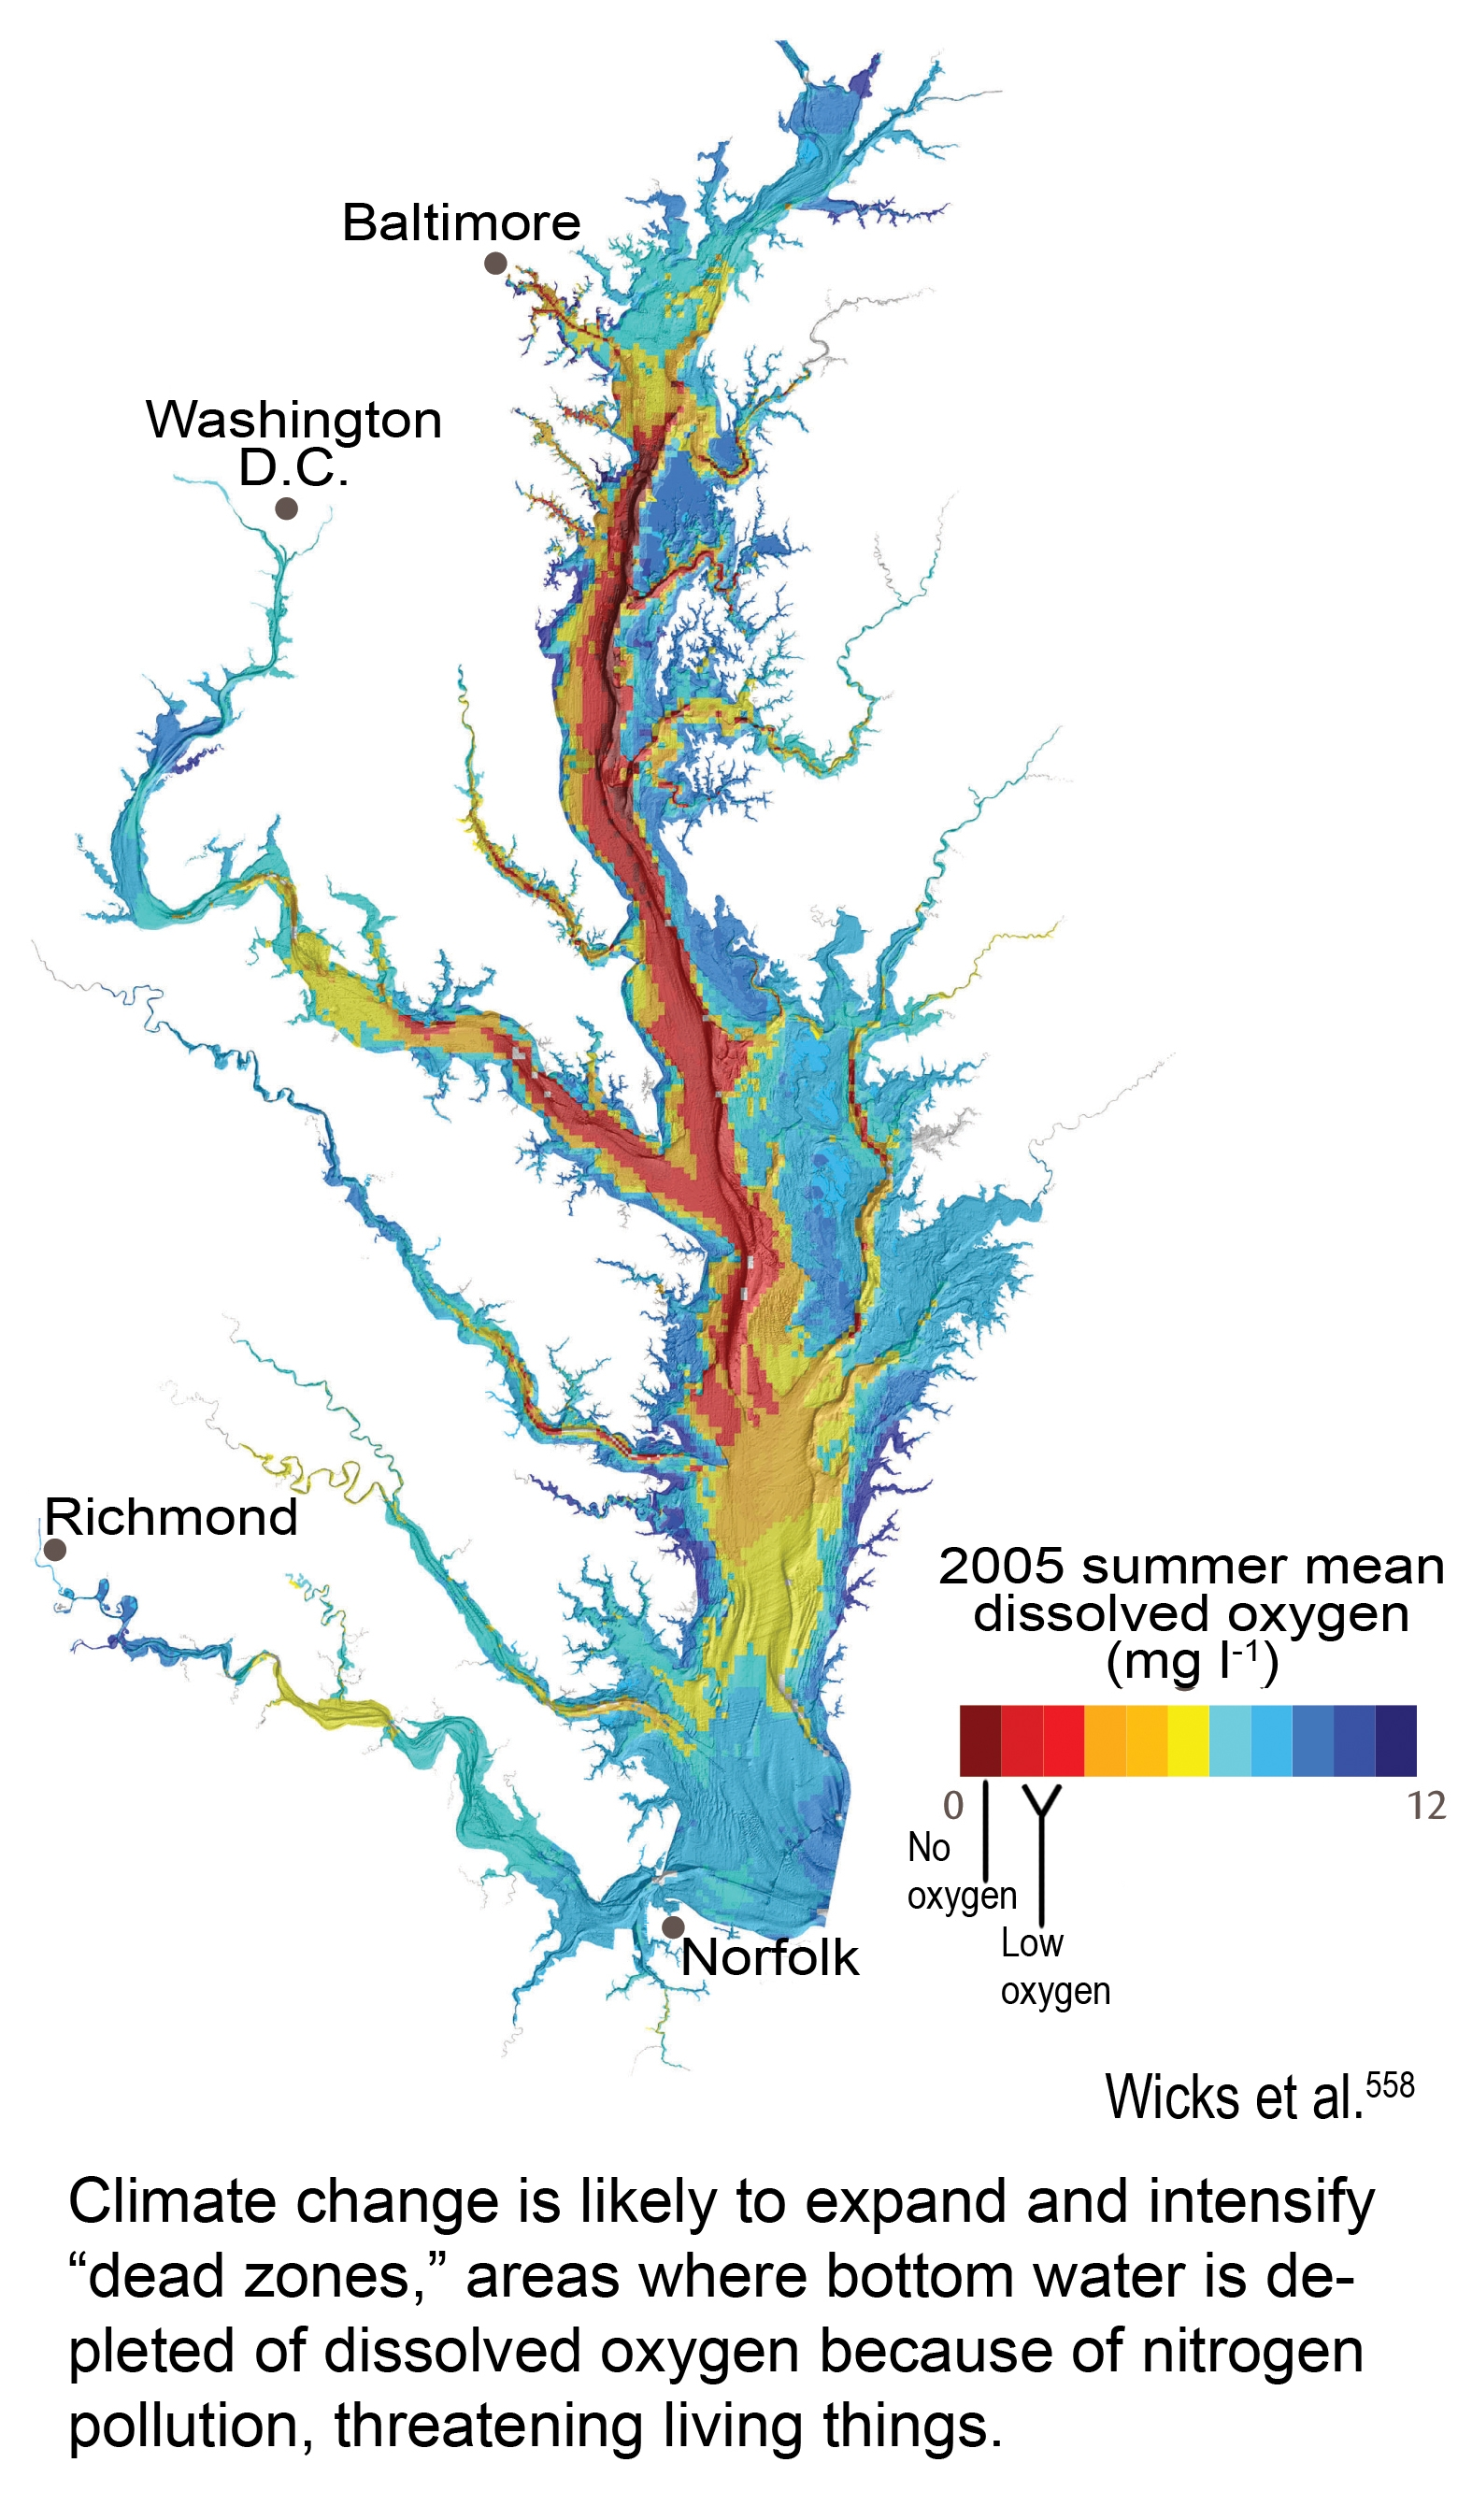 Climate change will likely lead to expansion of Chesapeake Bay dead zones. (U.S. Global Change Research Program)